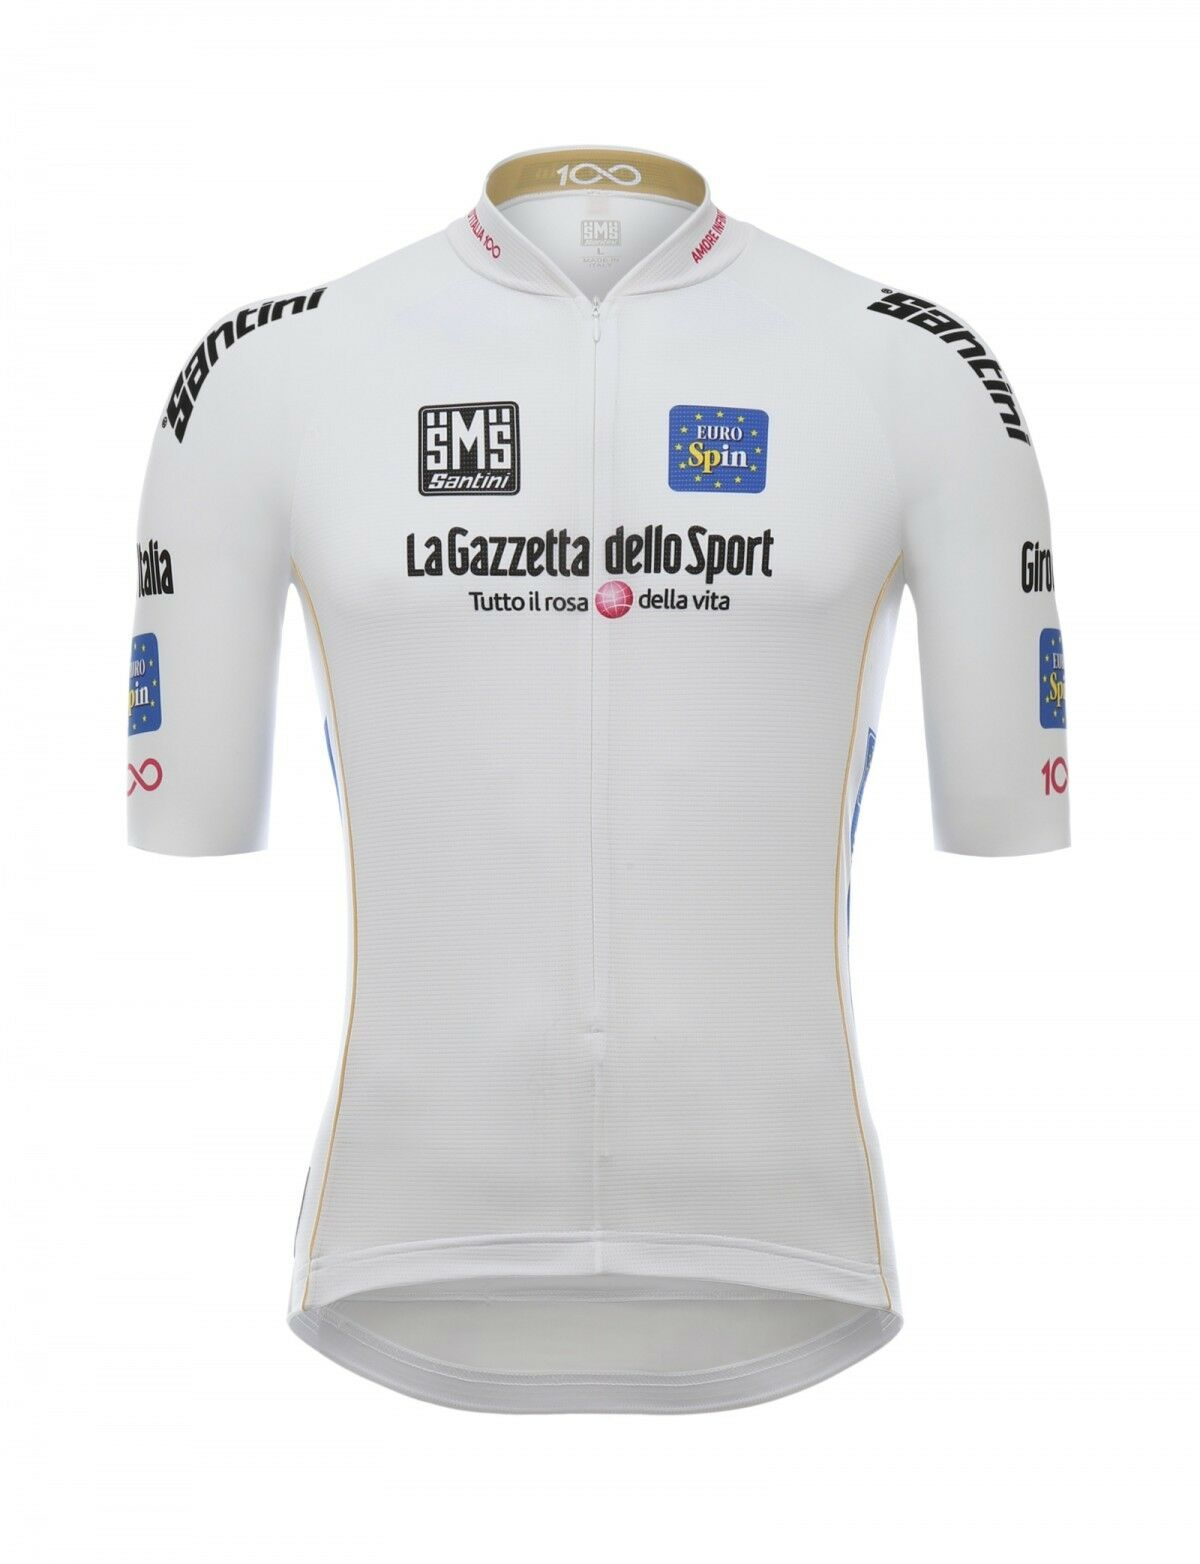 2017 GIRO D'ITALIA Best Young Rider Leaders White Cycling Jersey   by Santini